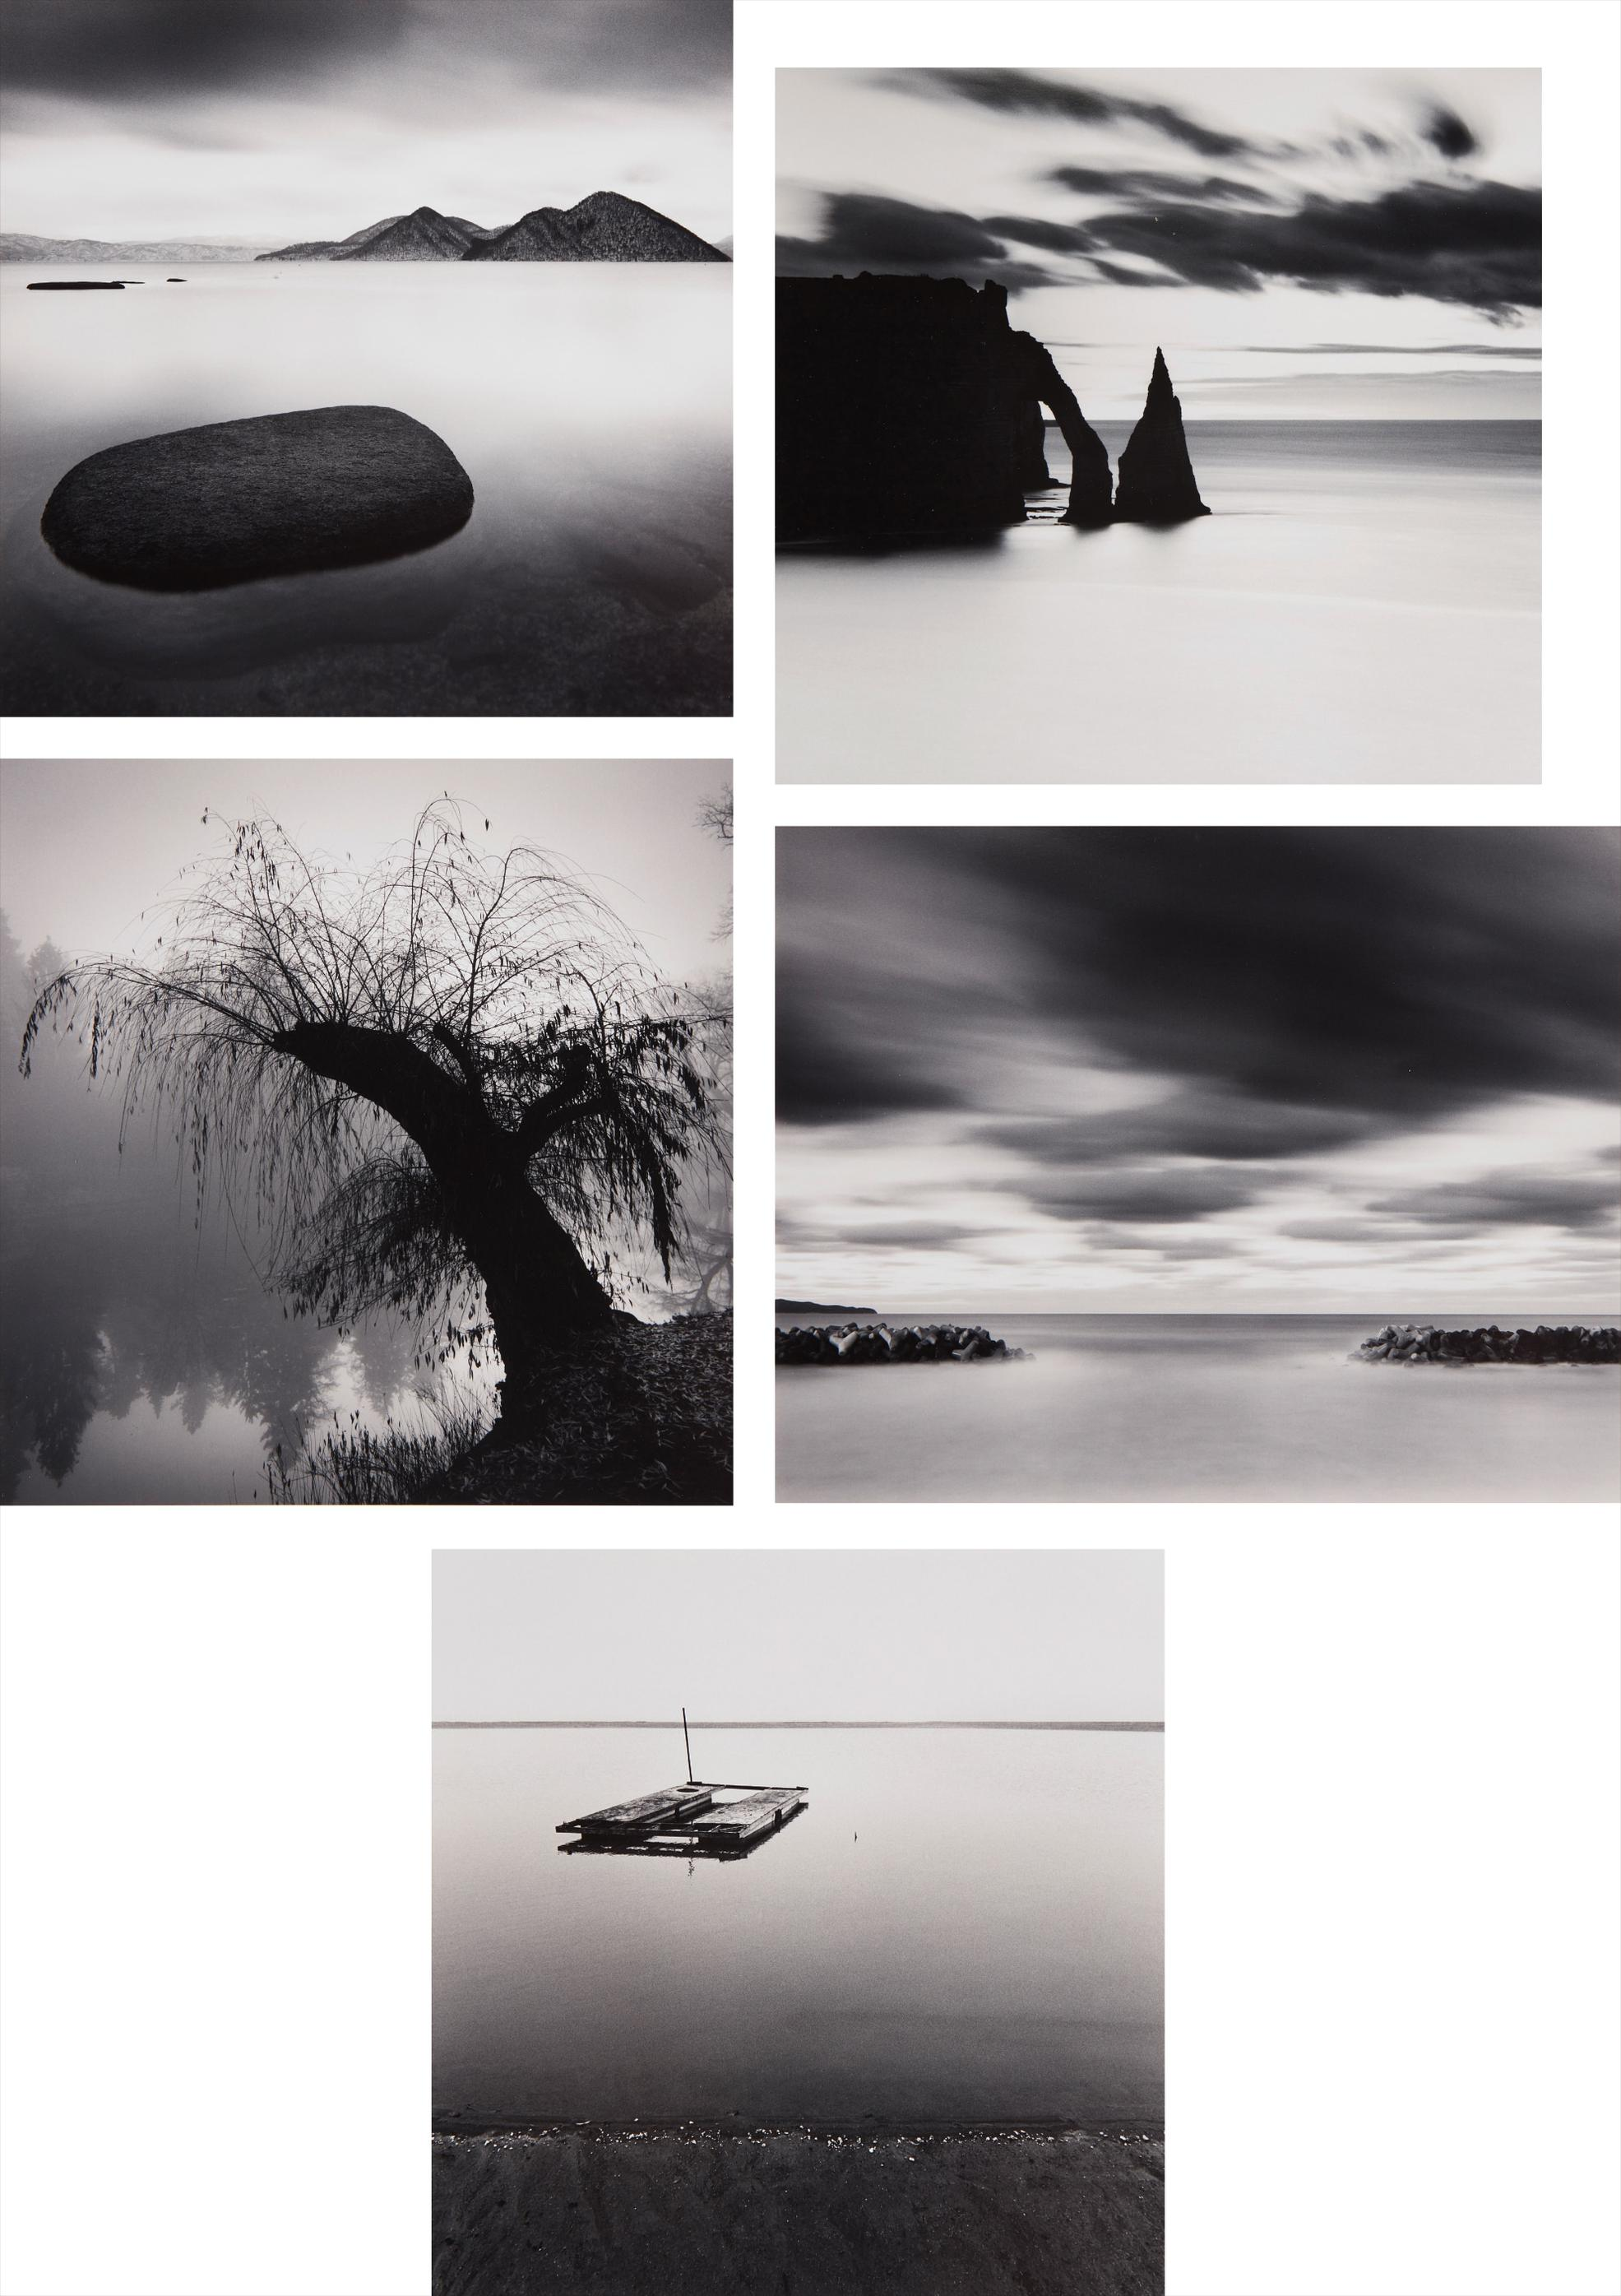 Michael Kenna-Selected Images-2004